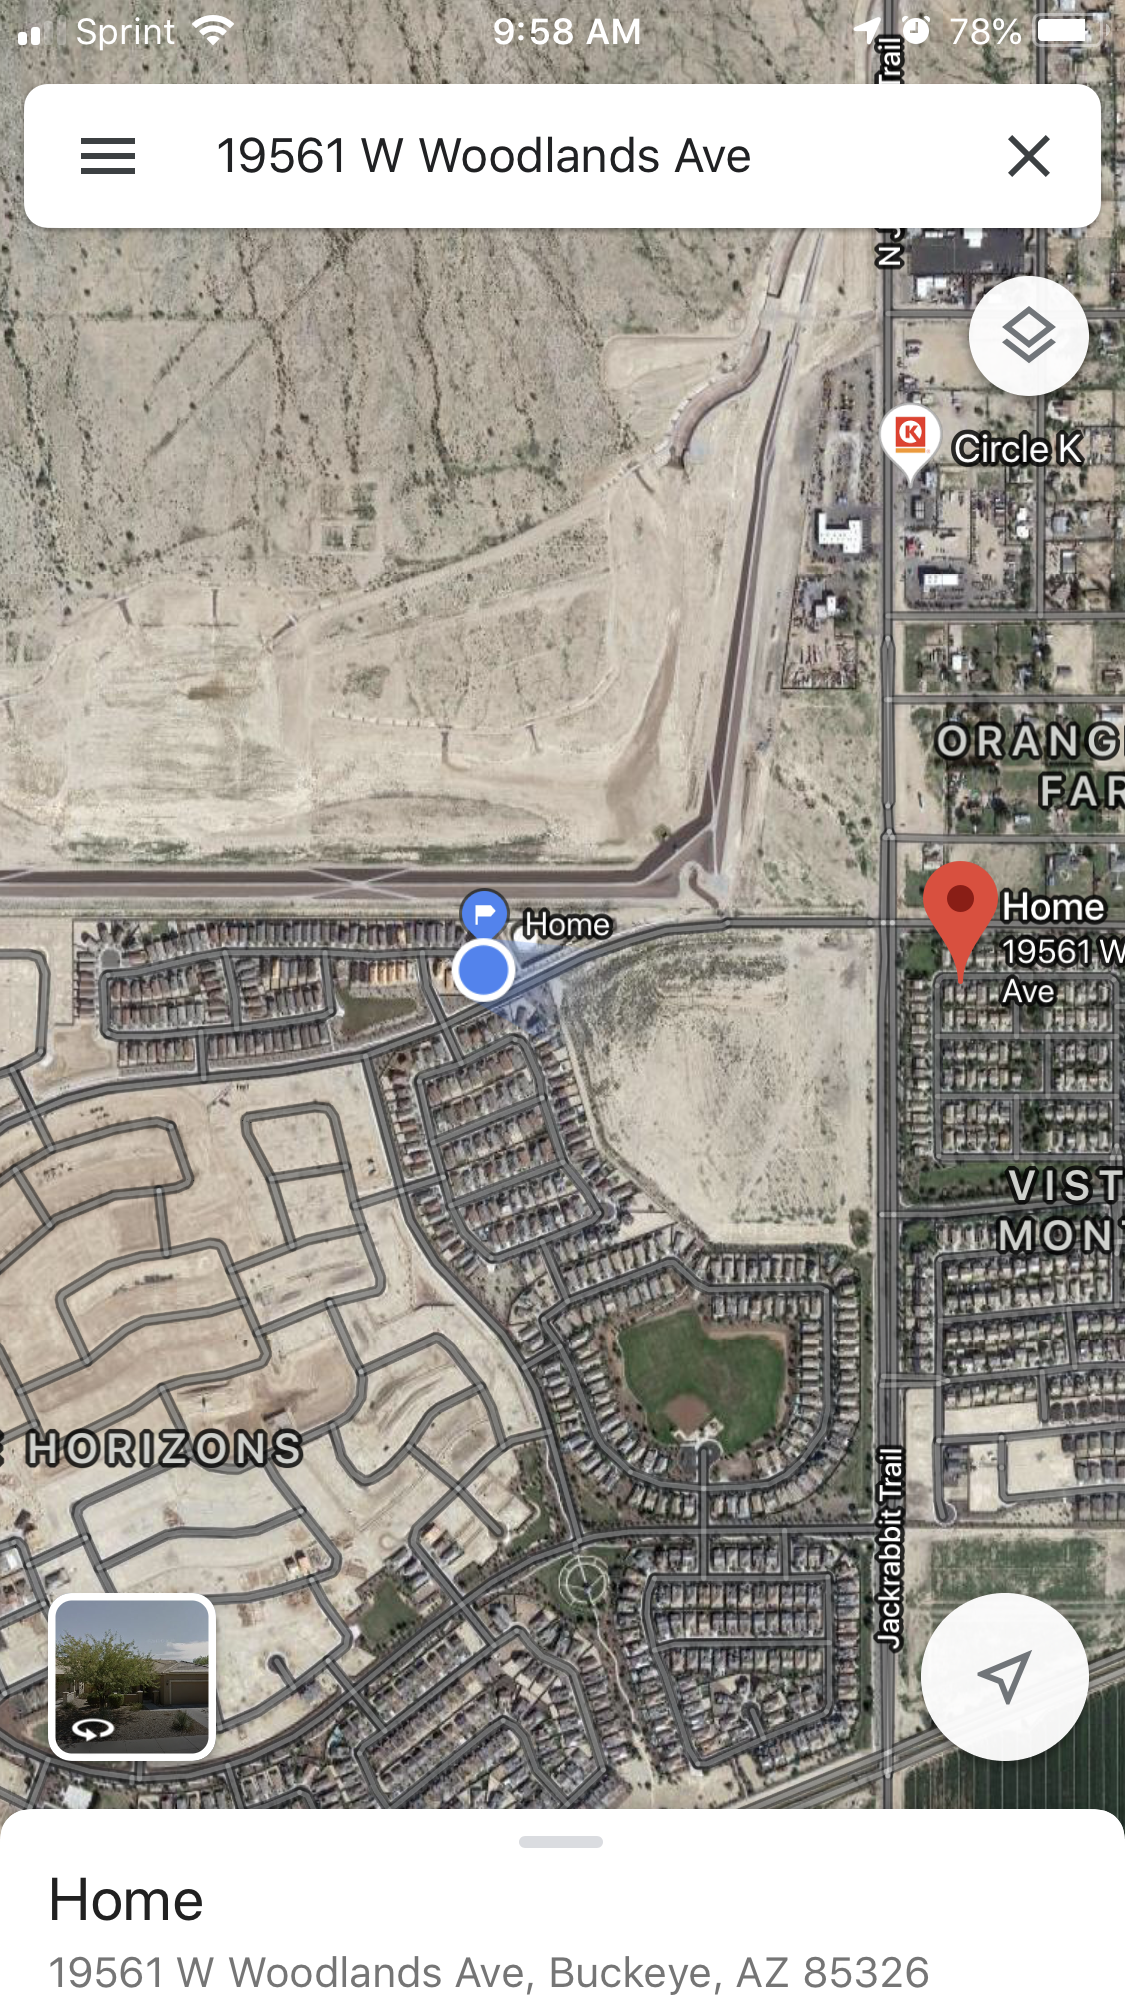 Google maps is showing my house across the street from where ... on my google business, my google calendar, my google search, my google mail, my disney maps, my nokia maps, my maps example, my google docs, my google drive, weather maps, my google history, my google contacts, bing maps, my google plus, my google profile, my maps app, my msn maps, my places google, satellite maps, my google gmail,